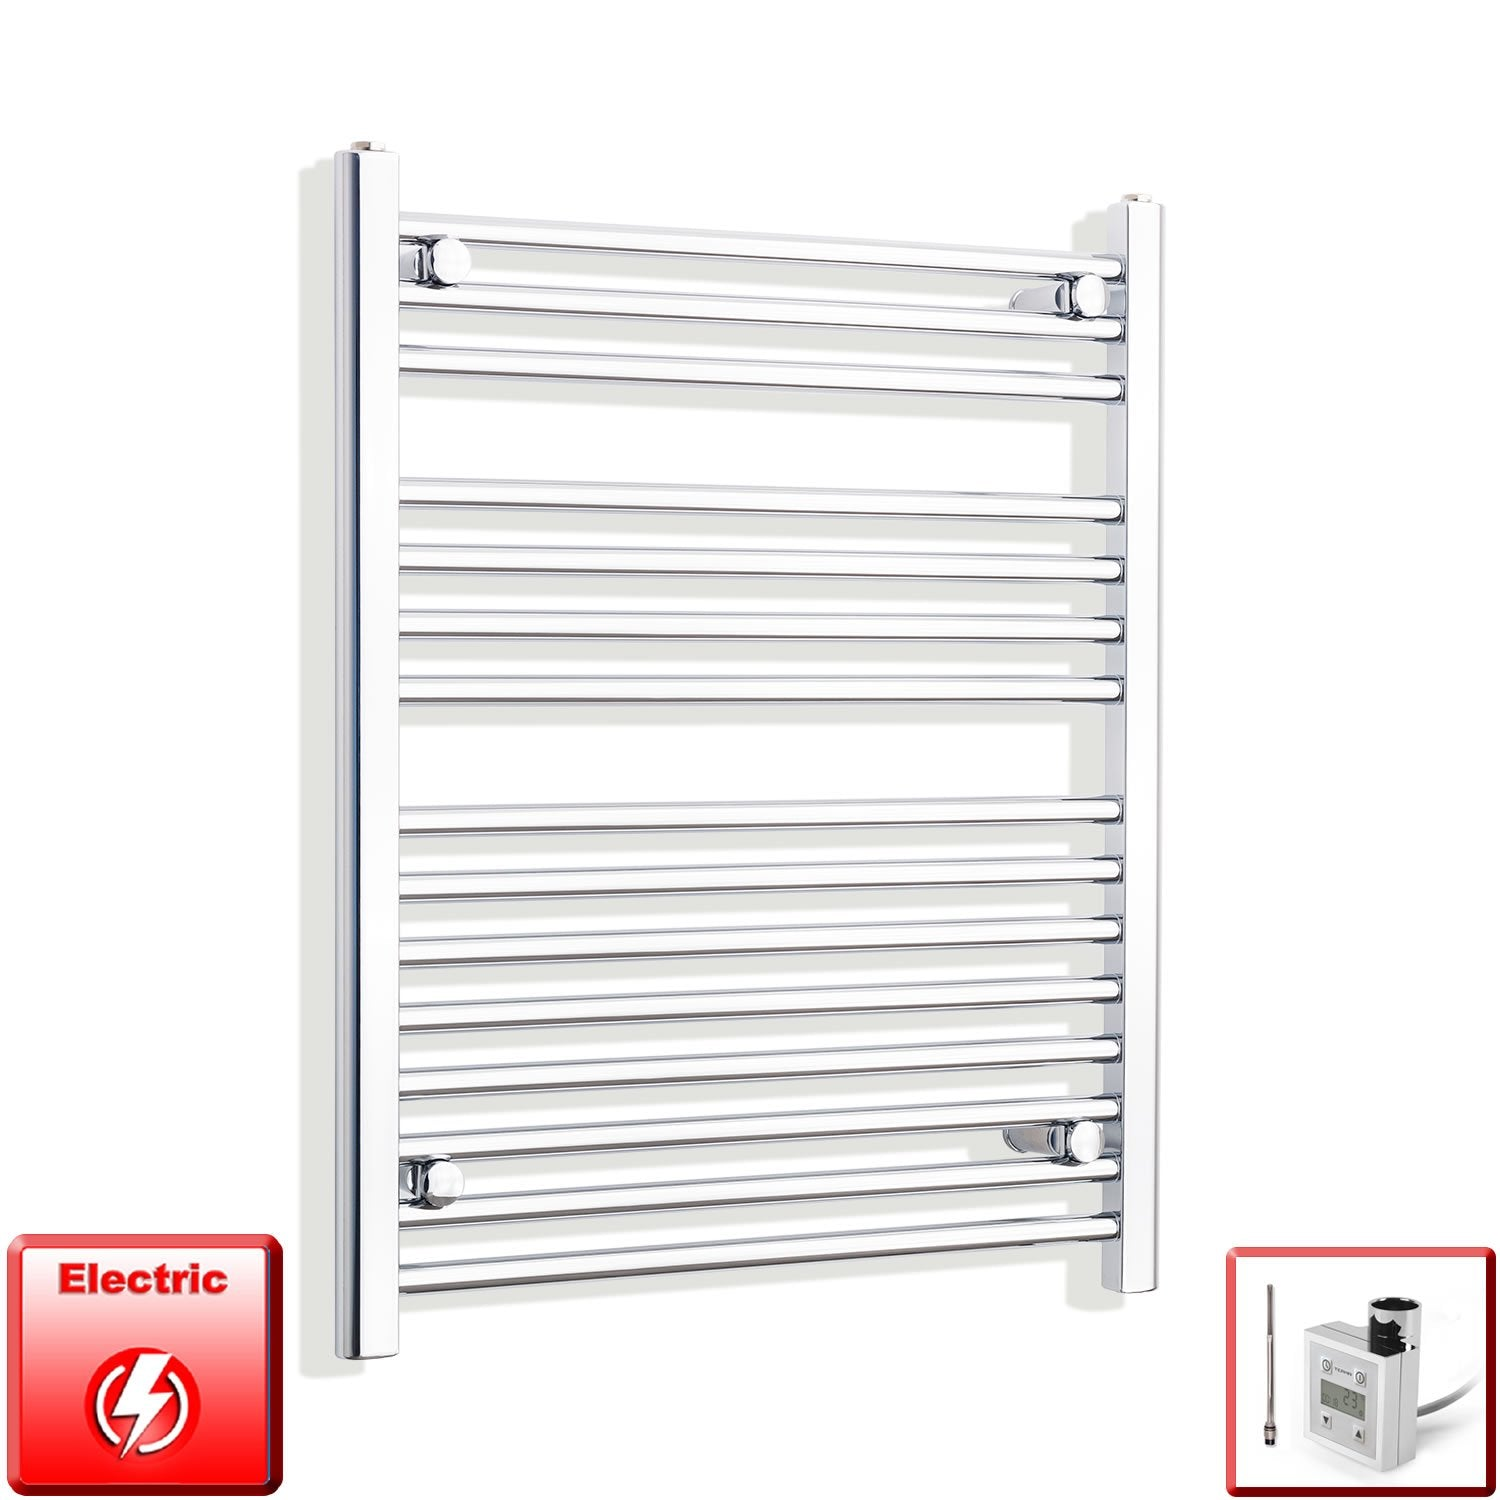 700mm Wide 800mm High Flat Or Curved Chrome Pre-Filled Electric Heated Towel Rail Radiator HTR,KTX-3 Thermostatic Element / Straight